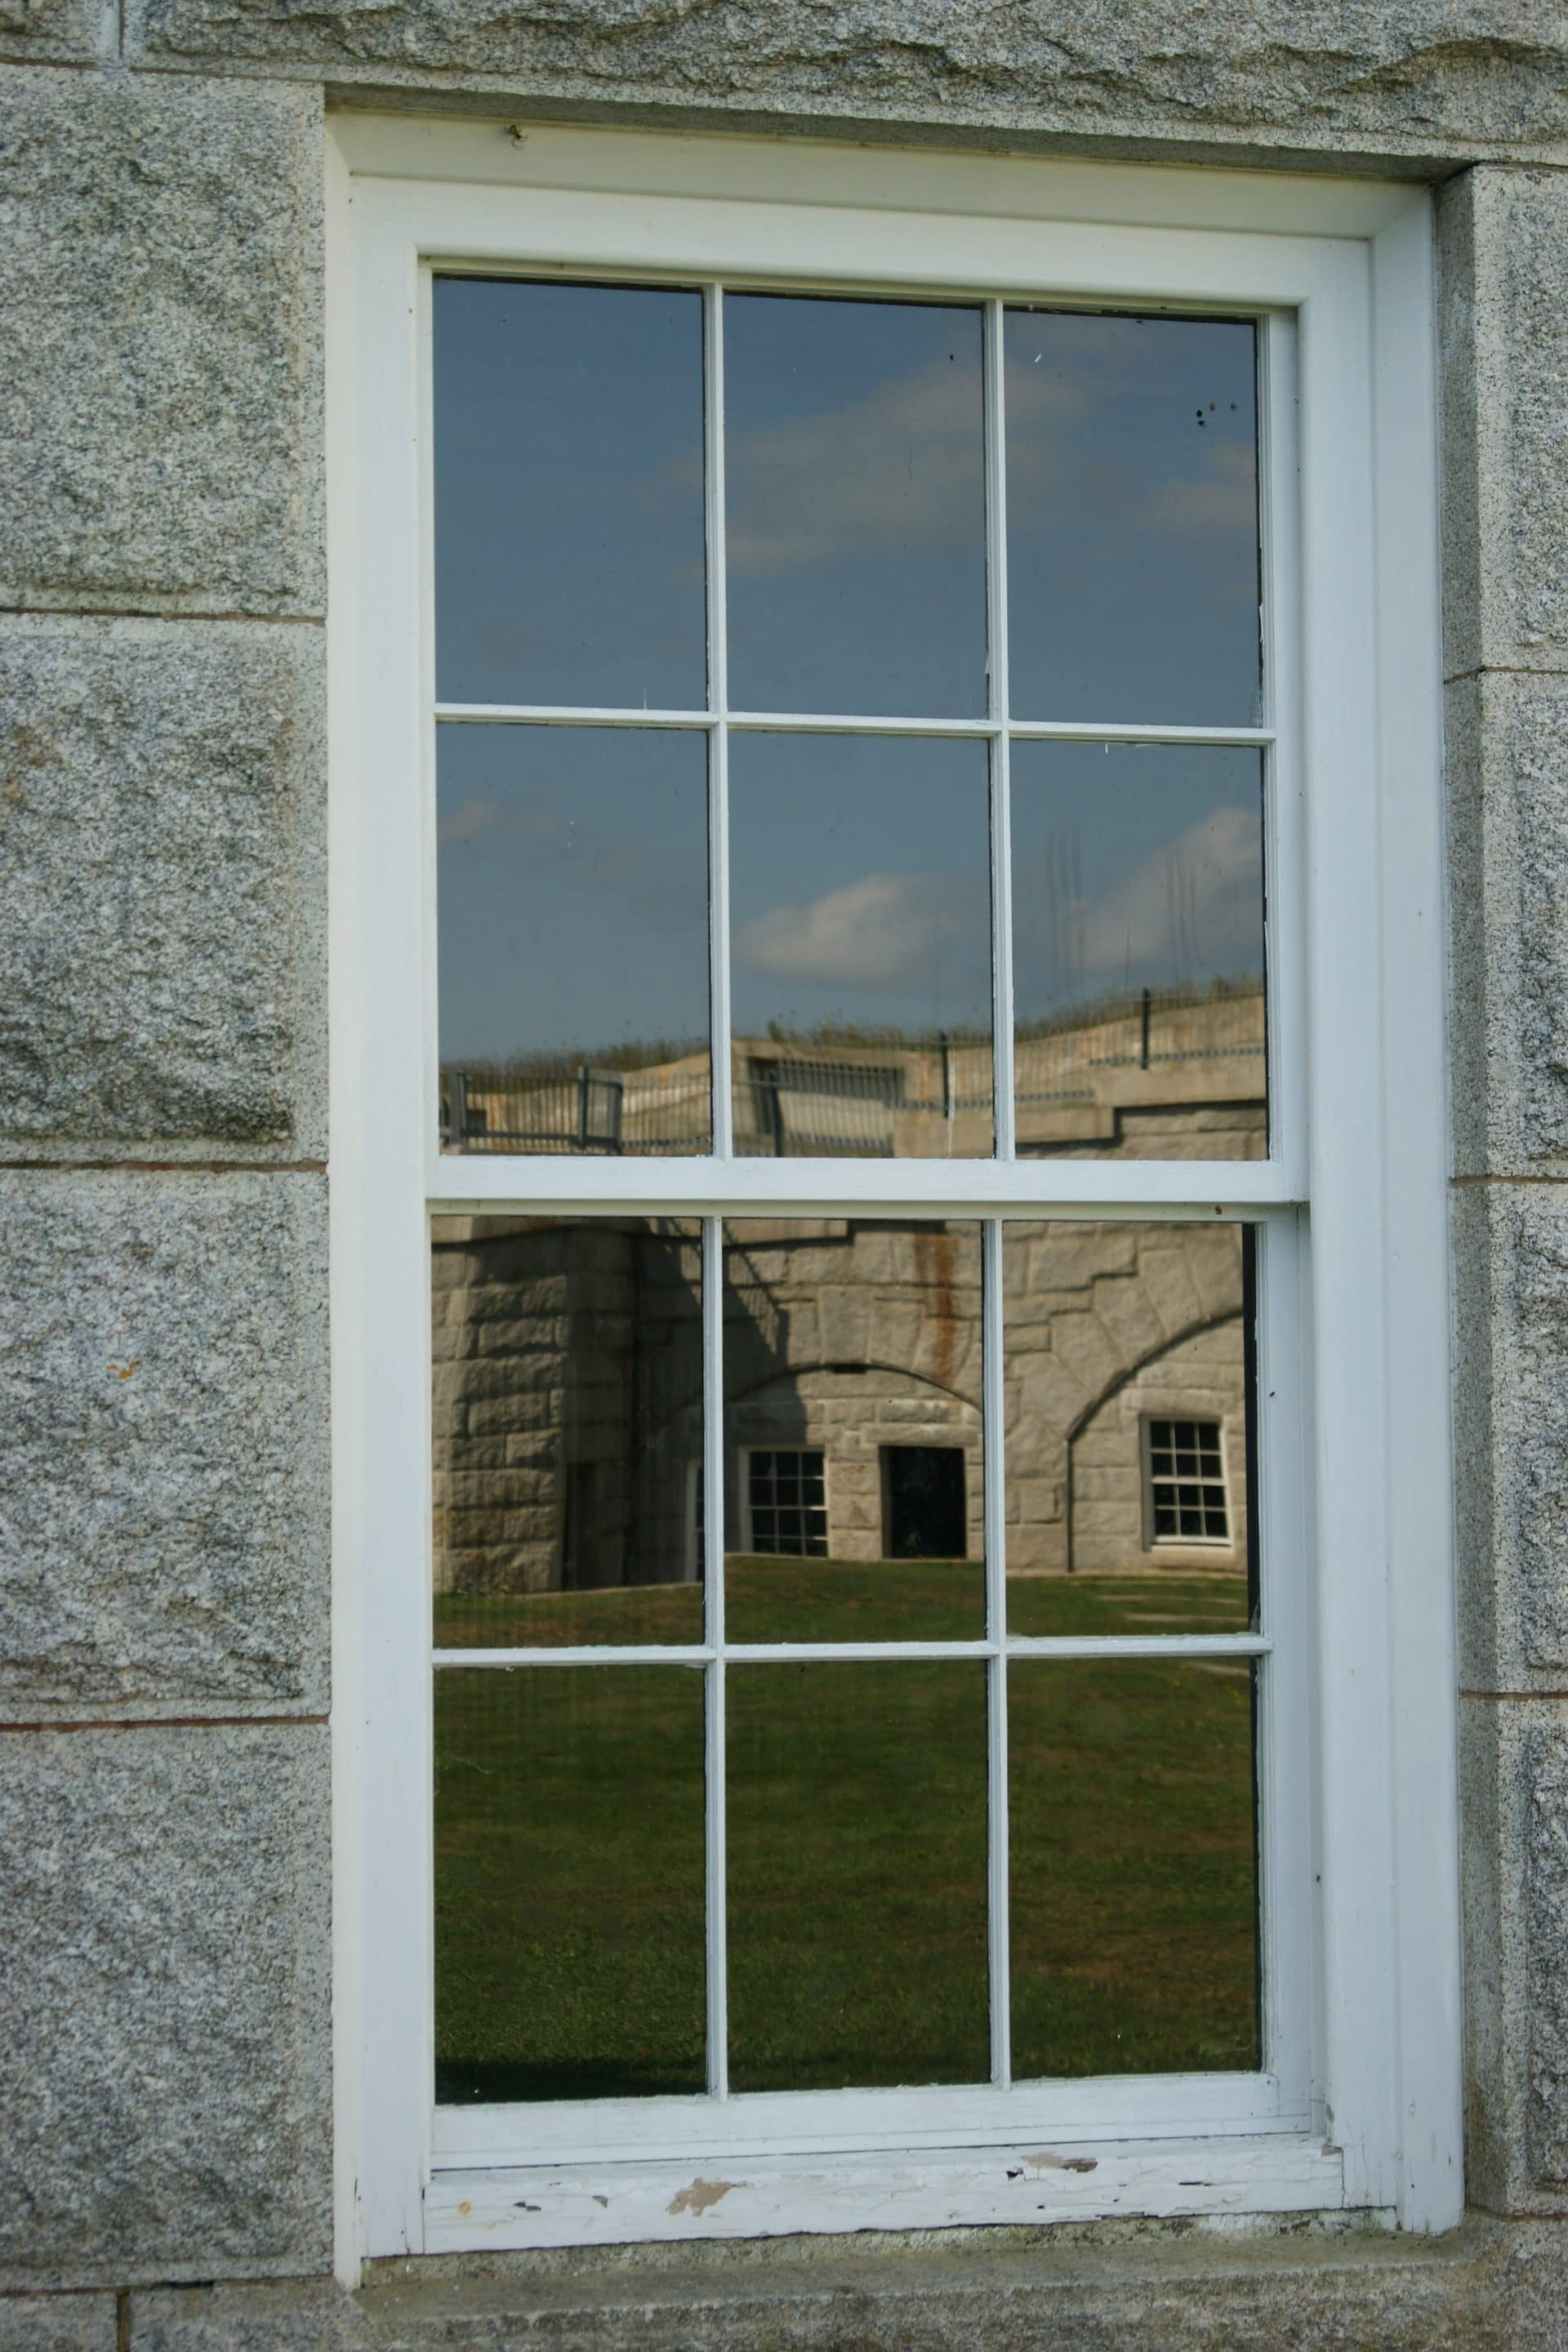 Reflection of Fort Knox, Maine